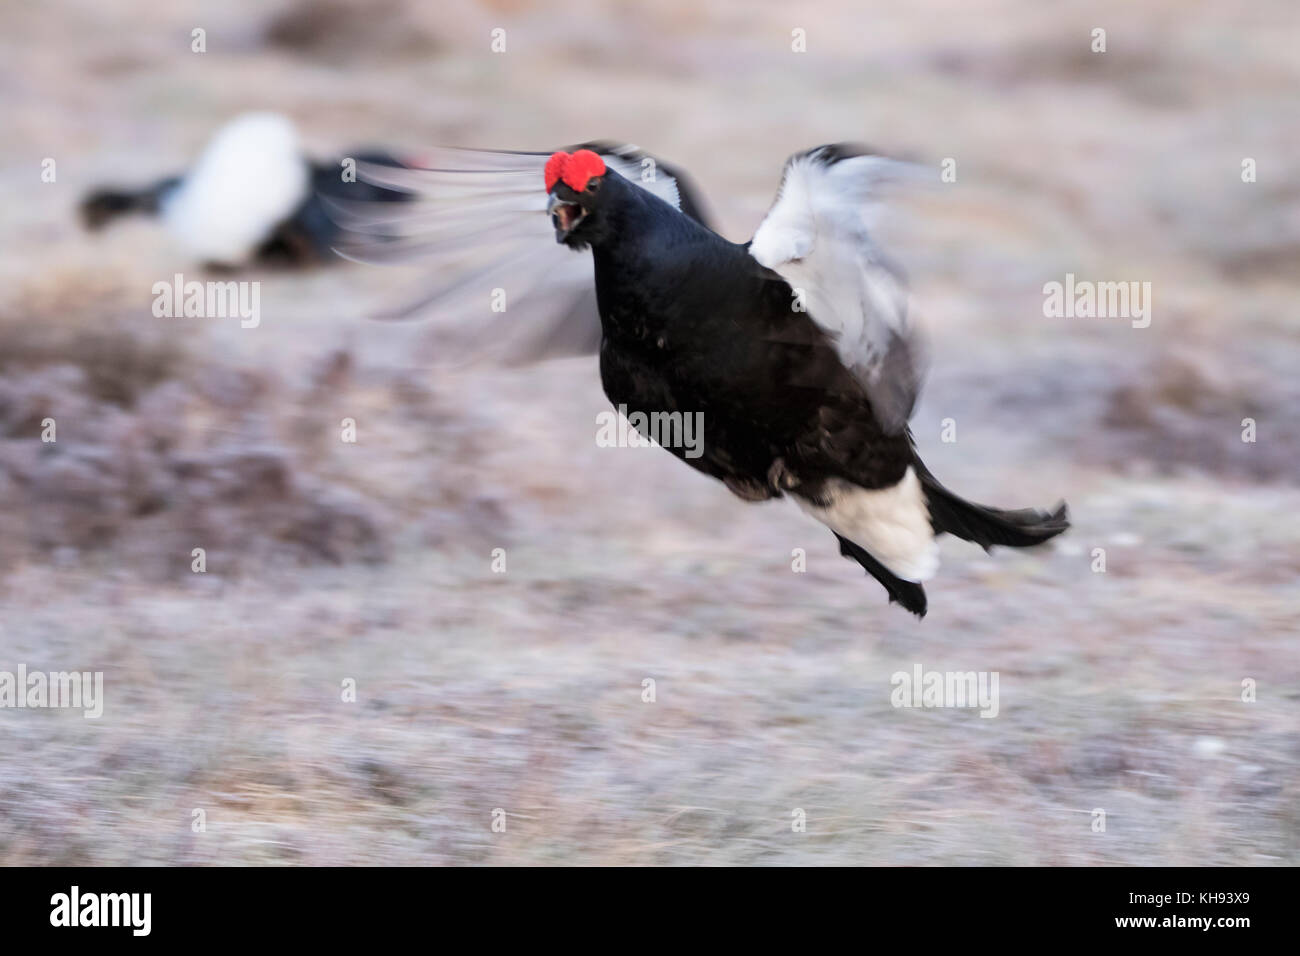 black grouse, Lyrurus tetrix, male and female during lekking on a frosty morning in Scotland - Stock Image